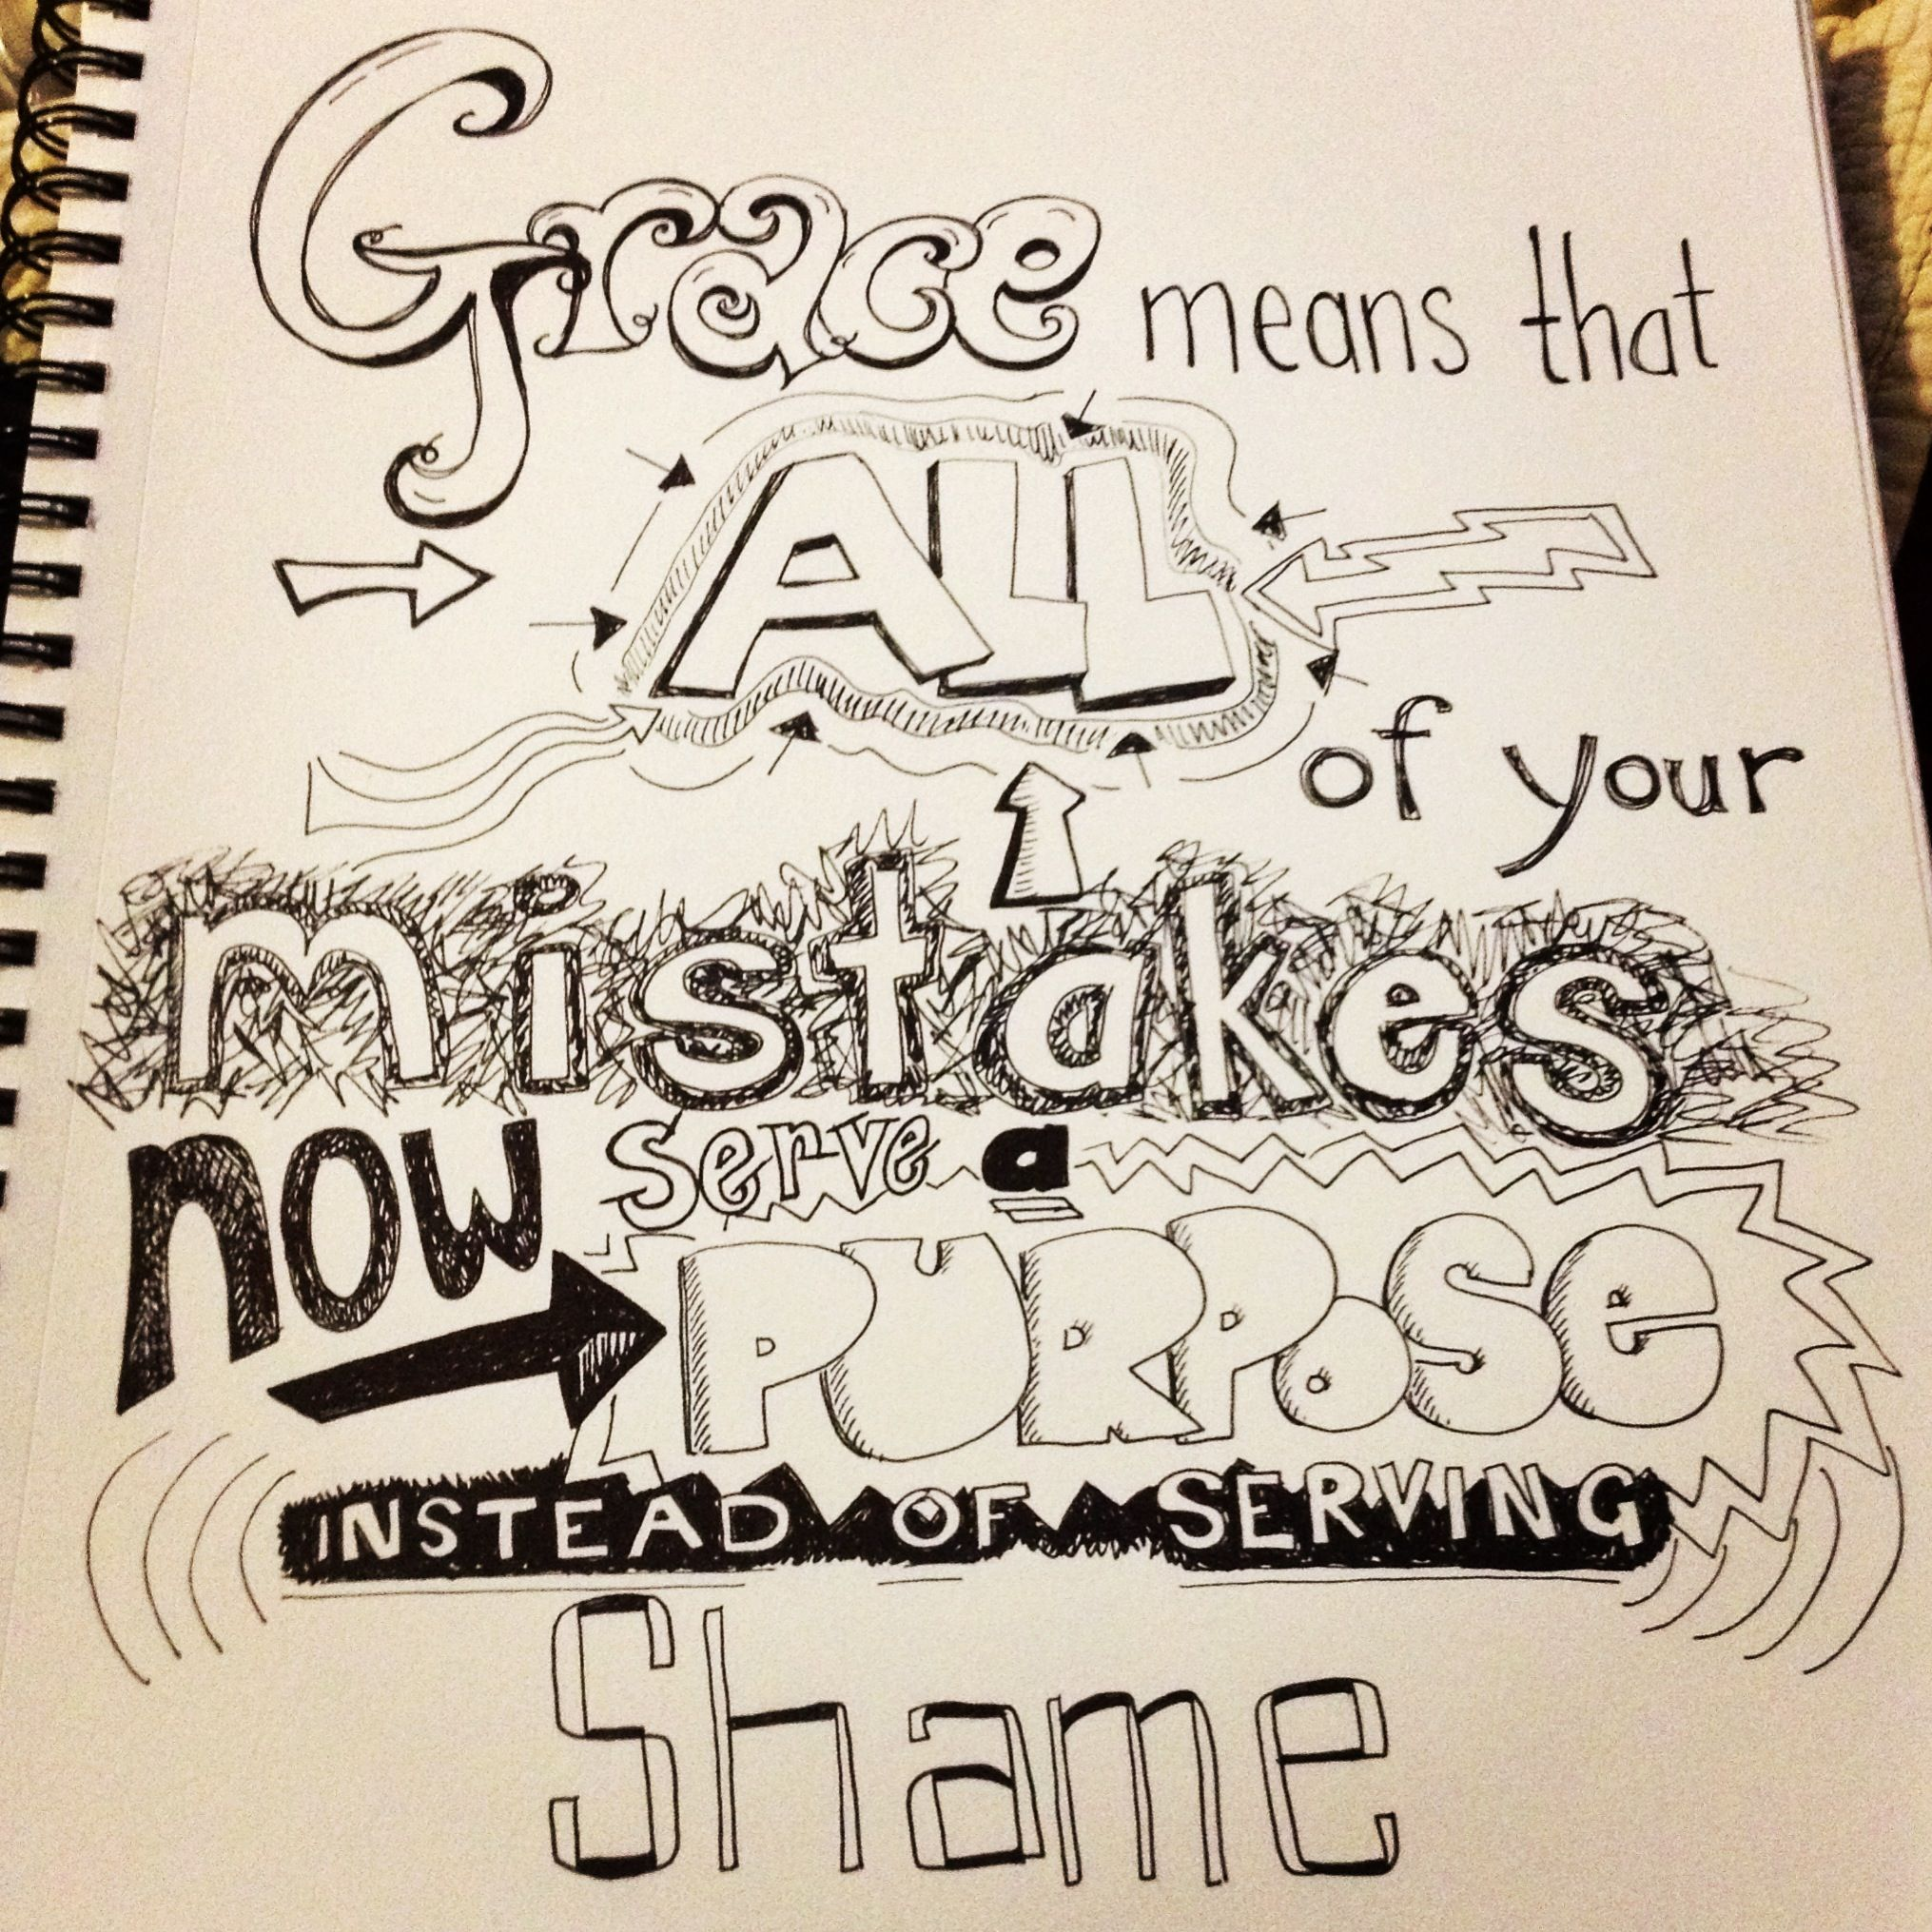 god s grace is for everyone because he loves us all hand